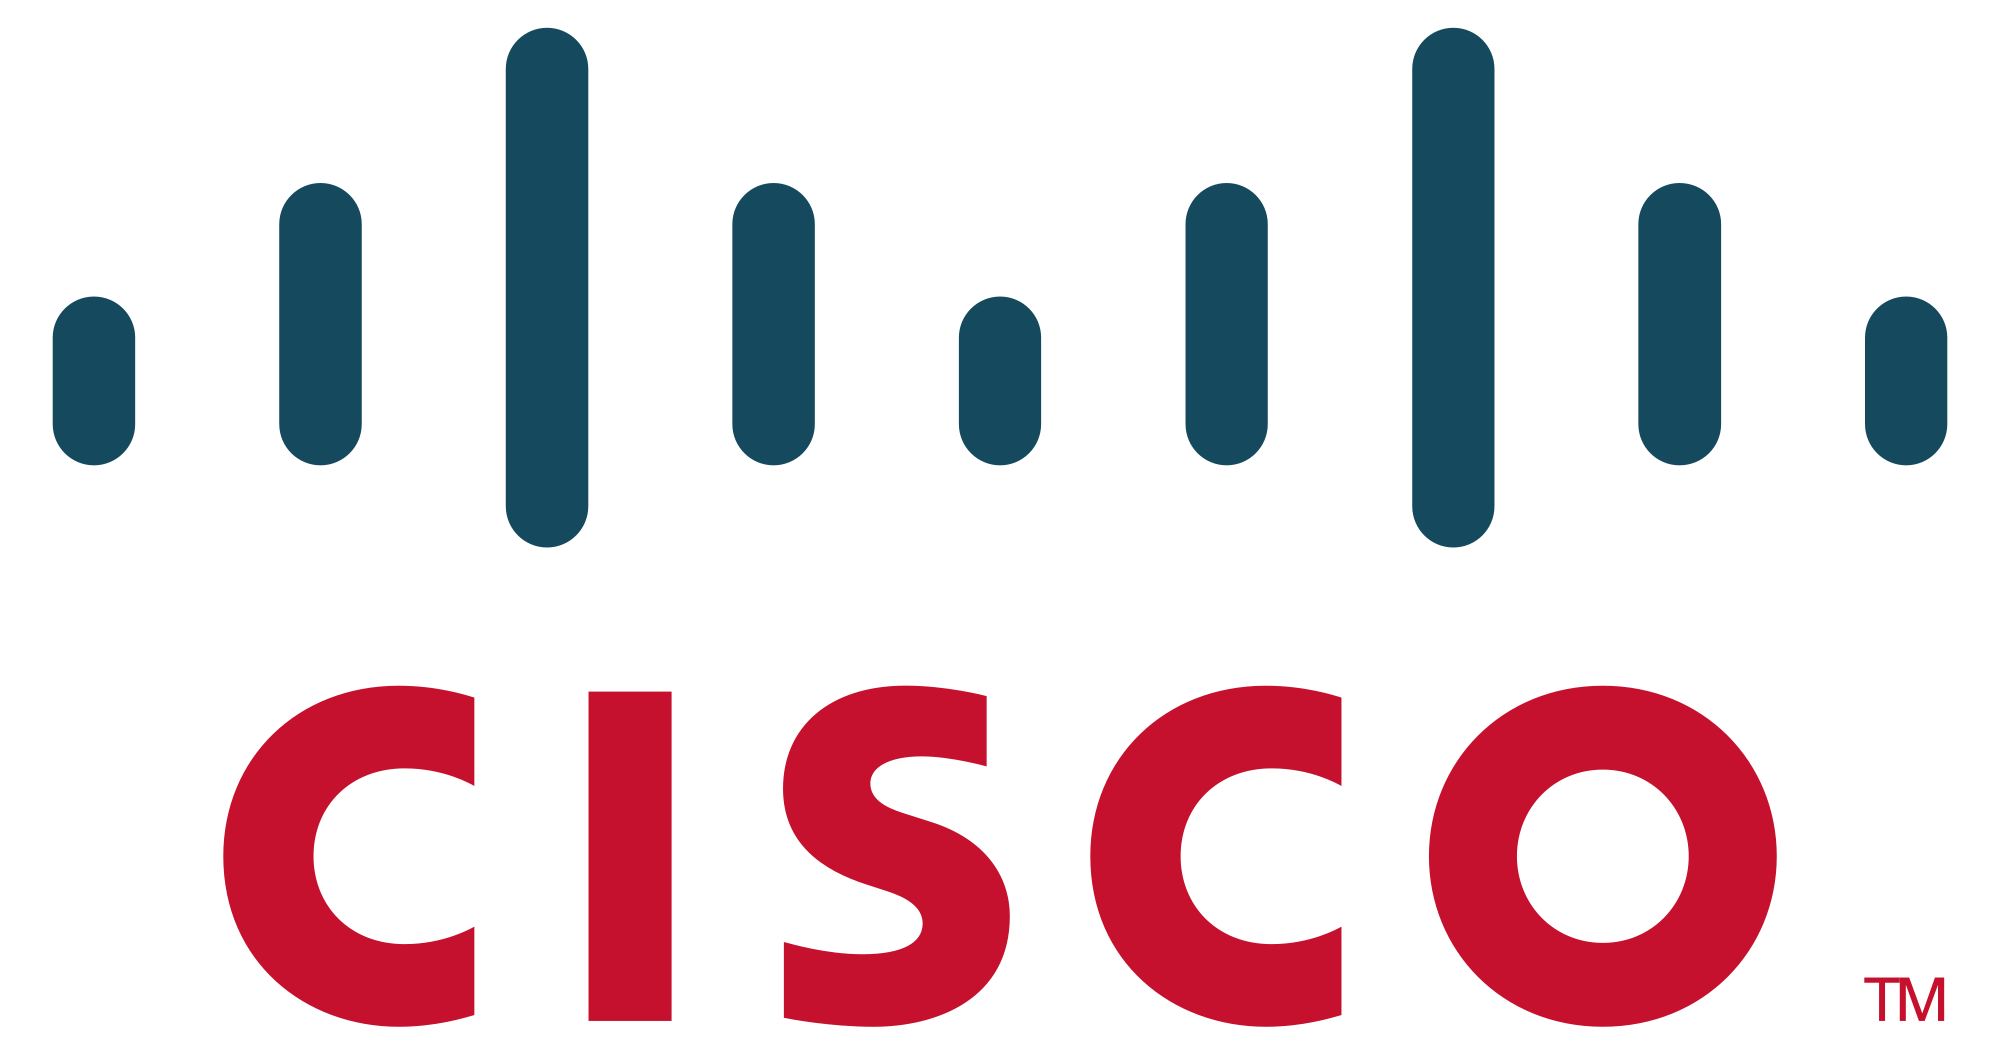 Cisco Firewalls, Routers, and Wireless